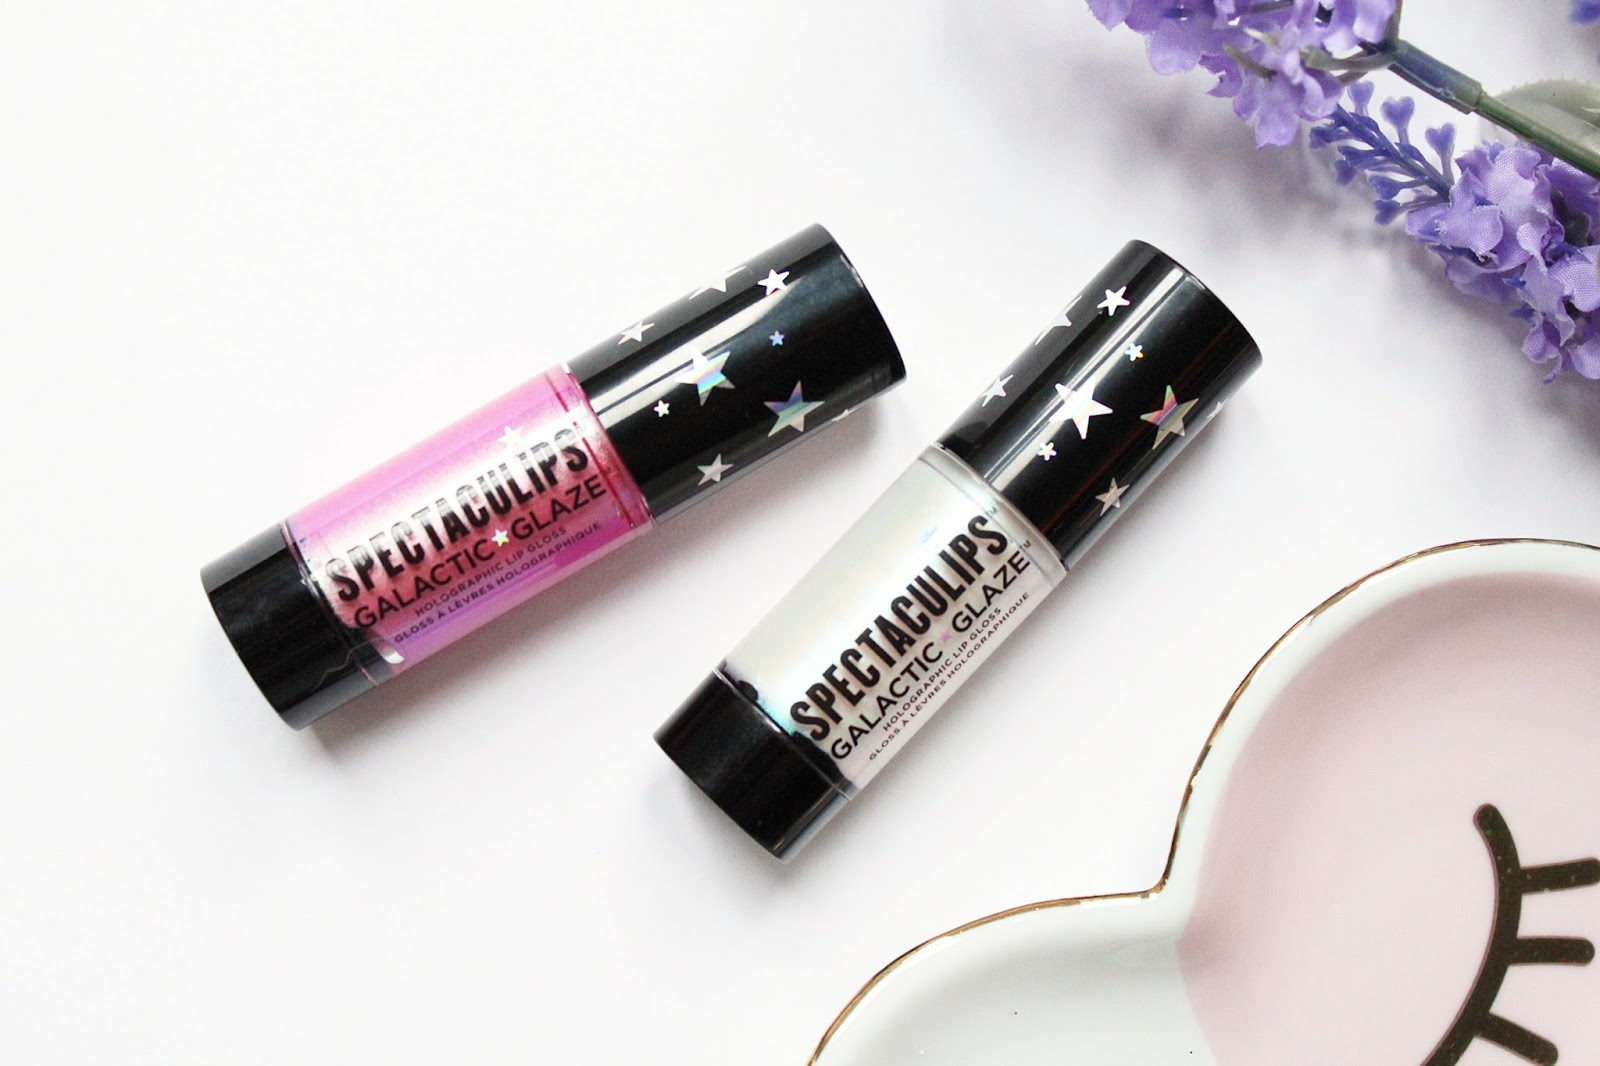 Soap & Glory Spectaculips Galactic Glaze Holographic Glosses